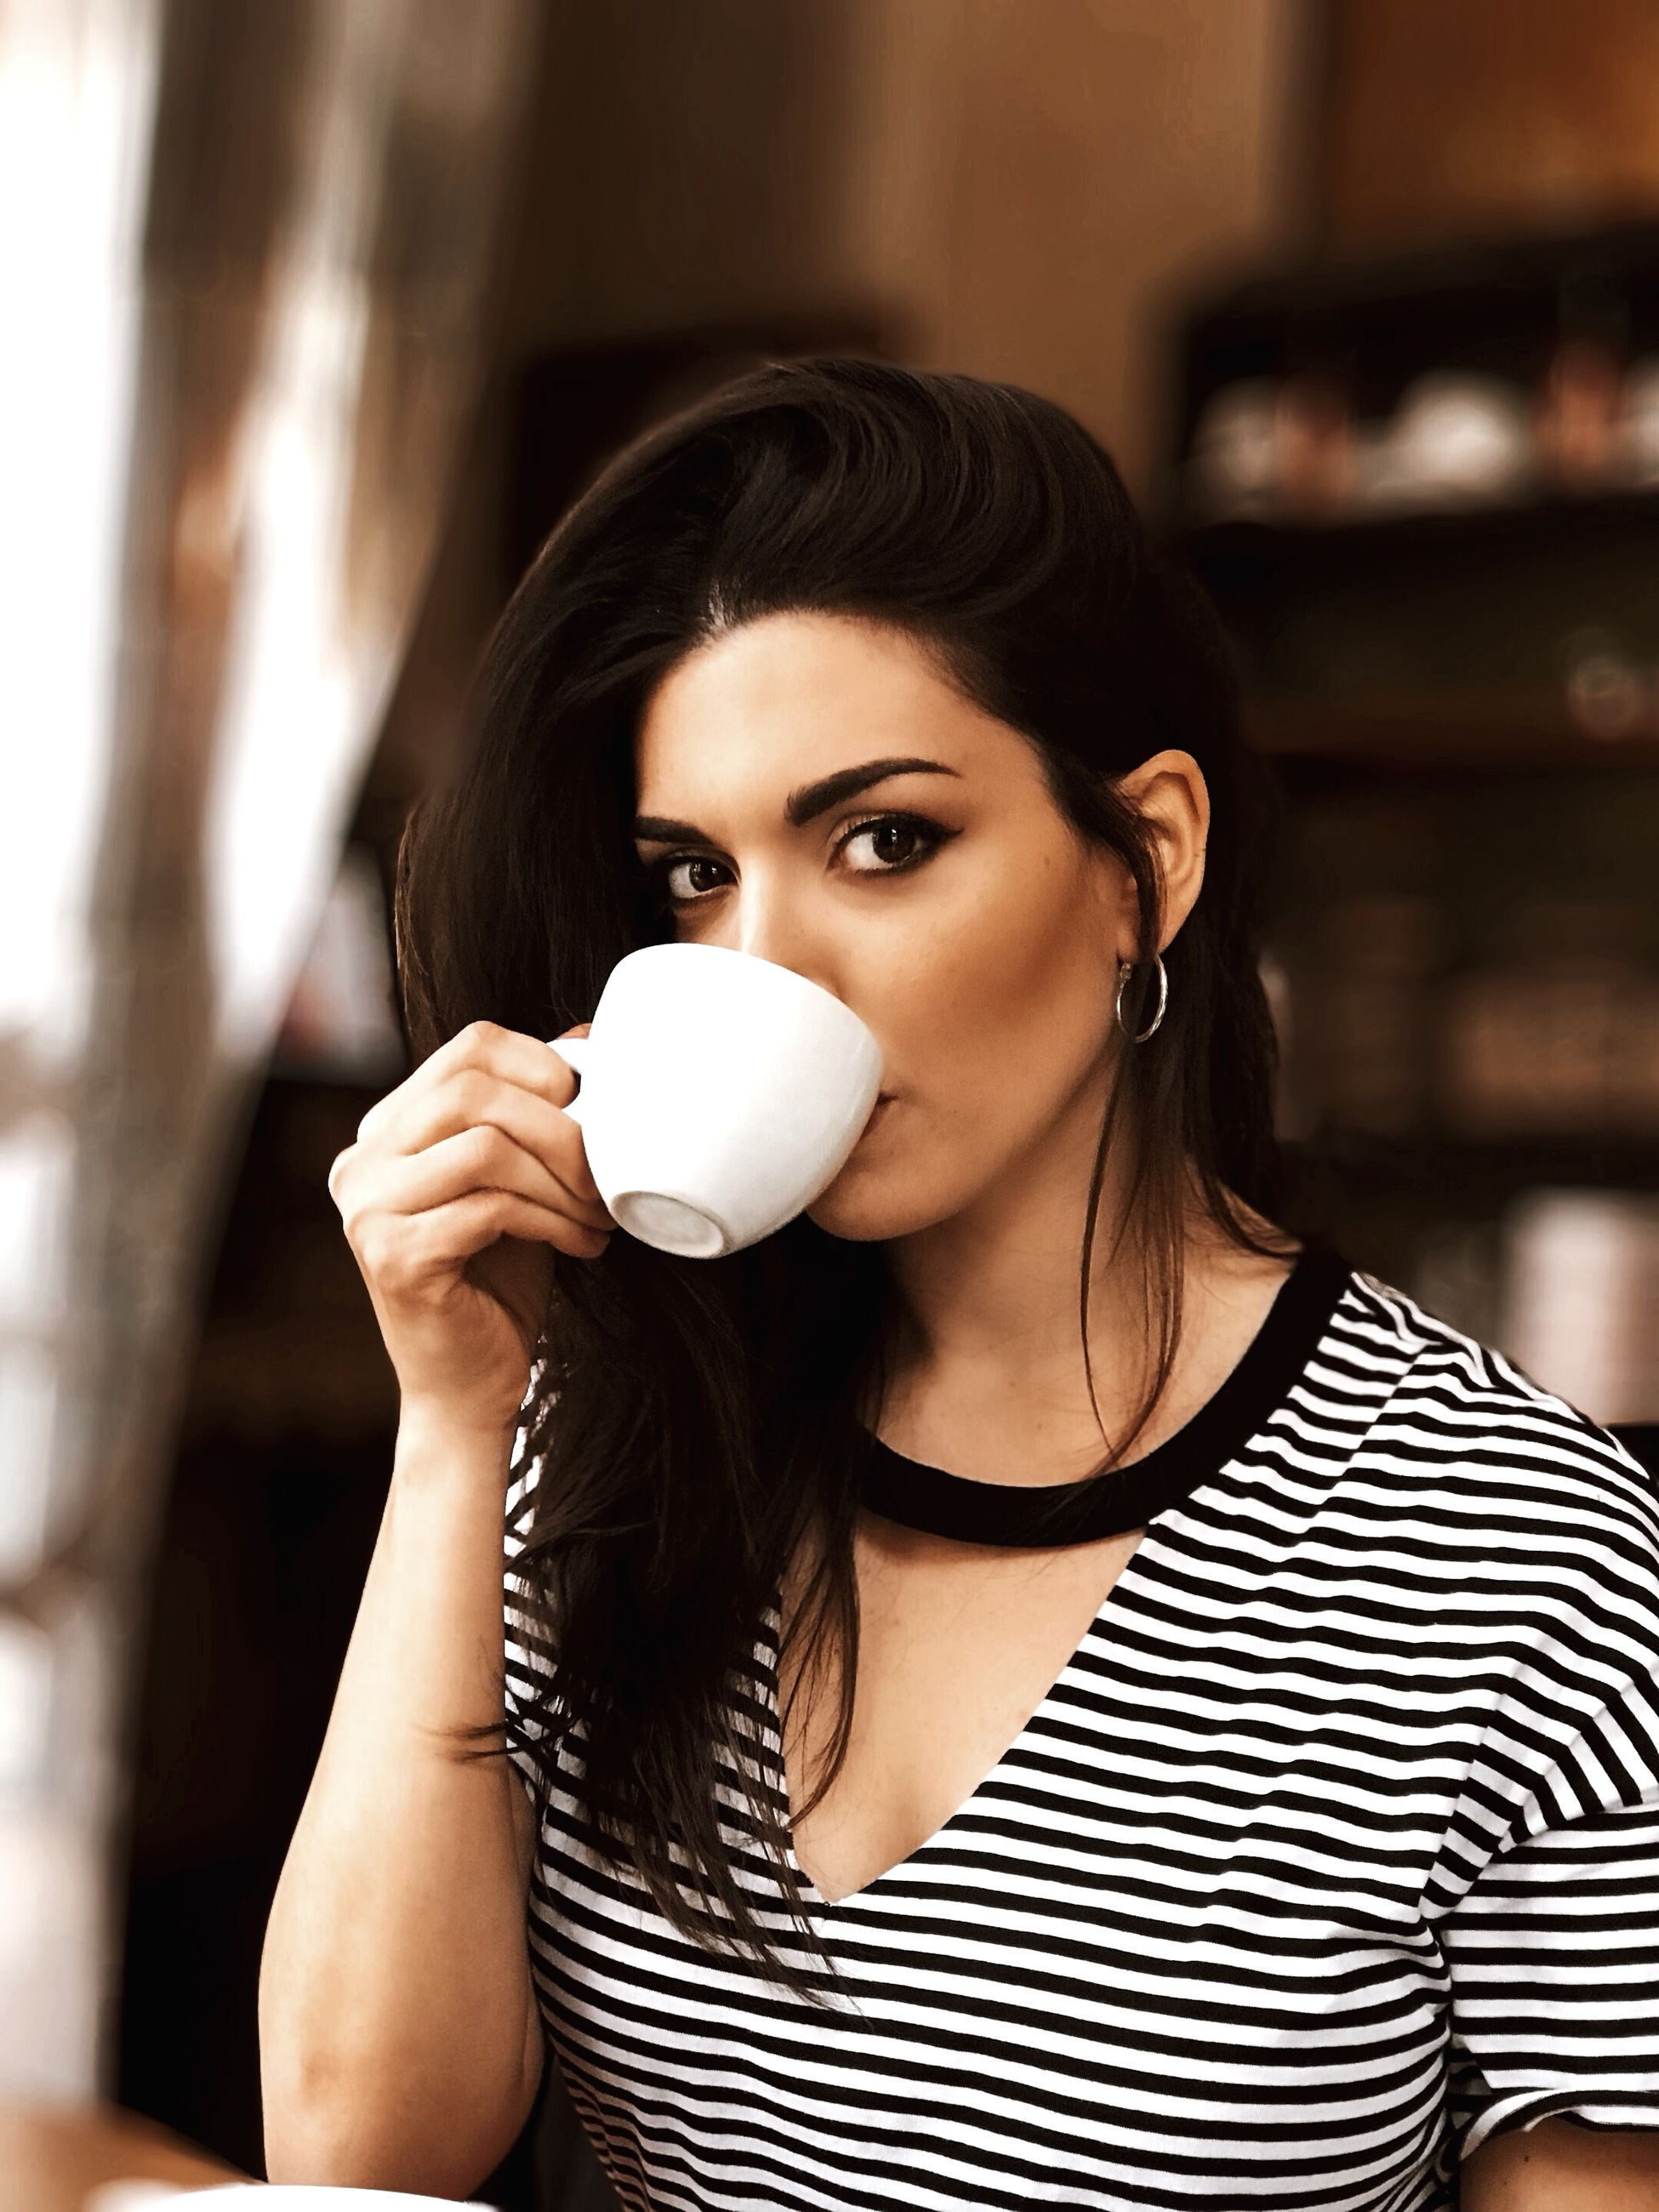 one person, young adult, indoors, young women, portrait, lifestyles, real people, front view, food and drink, focus on foreground, striped, women, holding, looking at camera, leisure activity, beautiful woman, casual clothing, beauty, adult, coffee, hairstyle, drinking